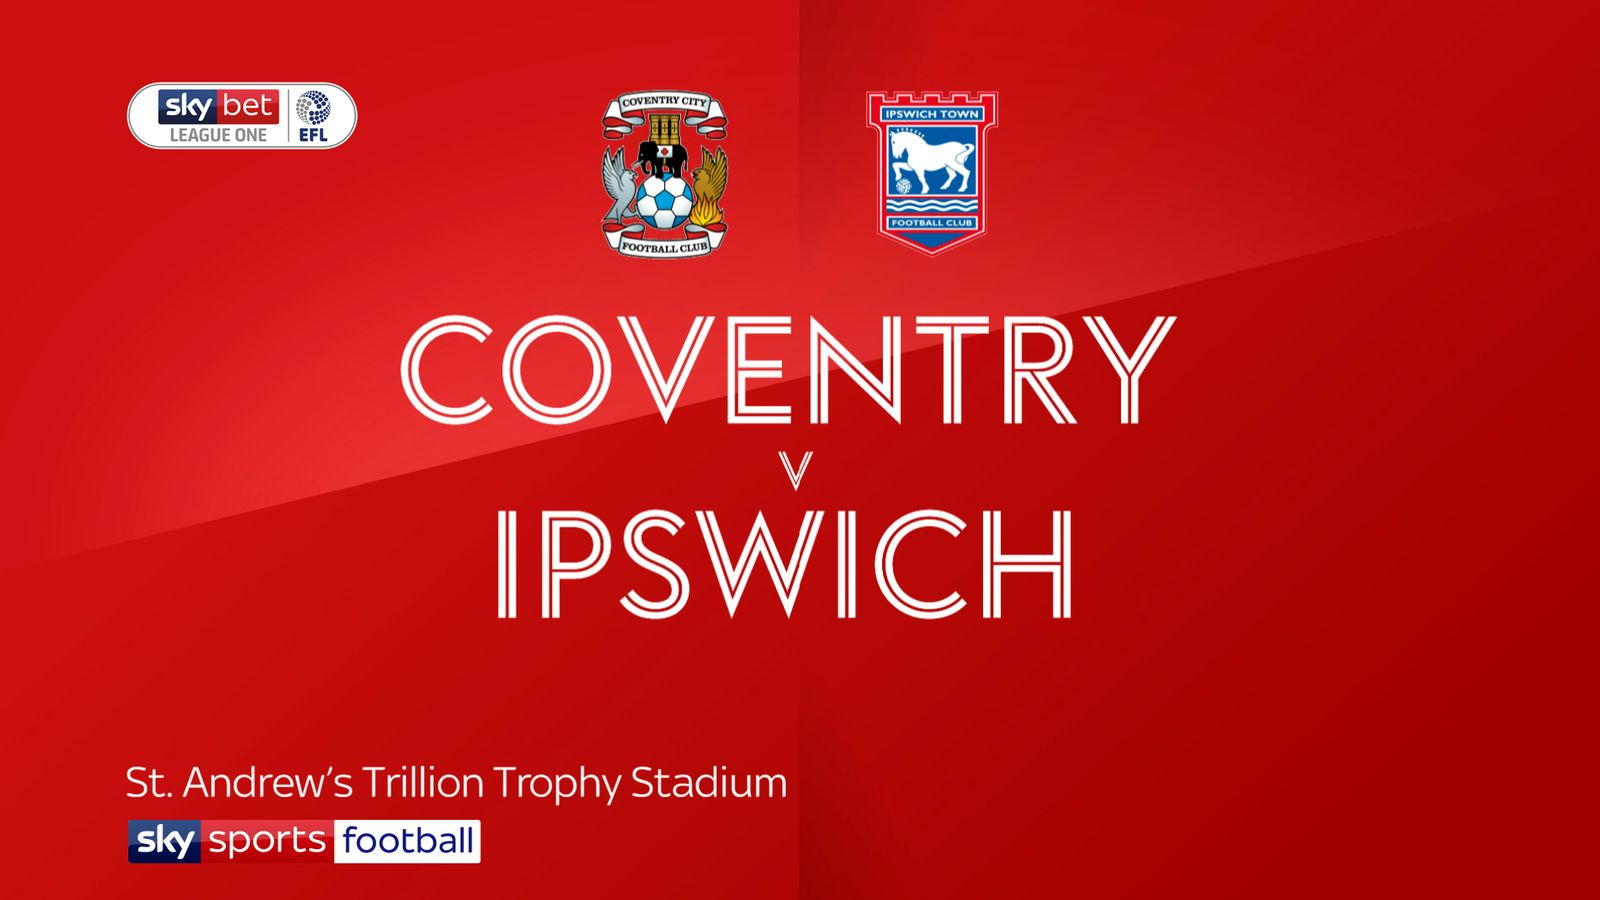 Coventry 1-1 Ipswich: Tractor Boys fail to close gap on leaders Wycombe